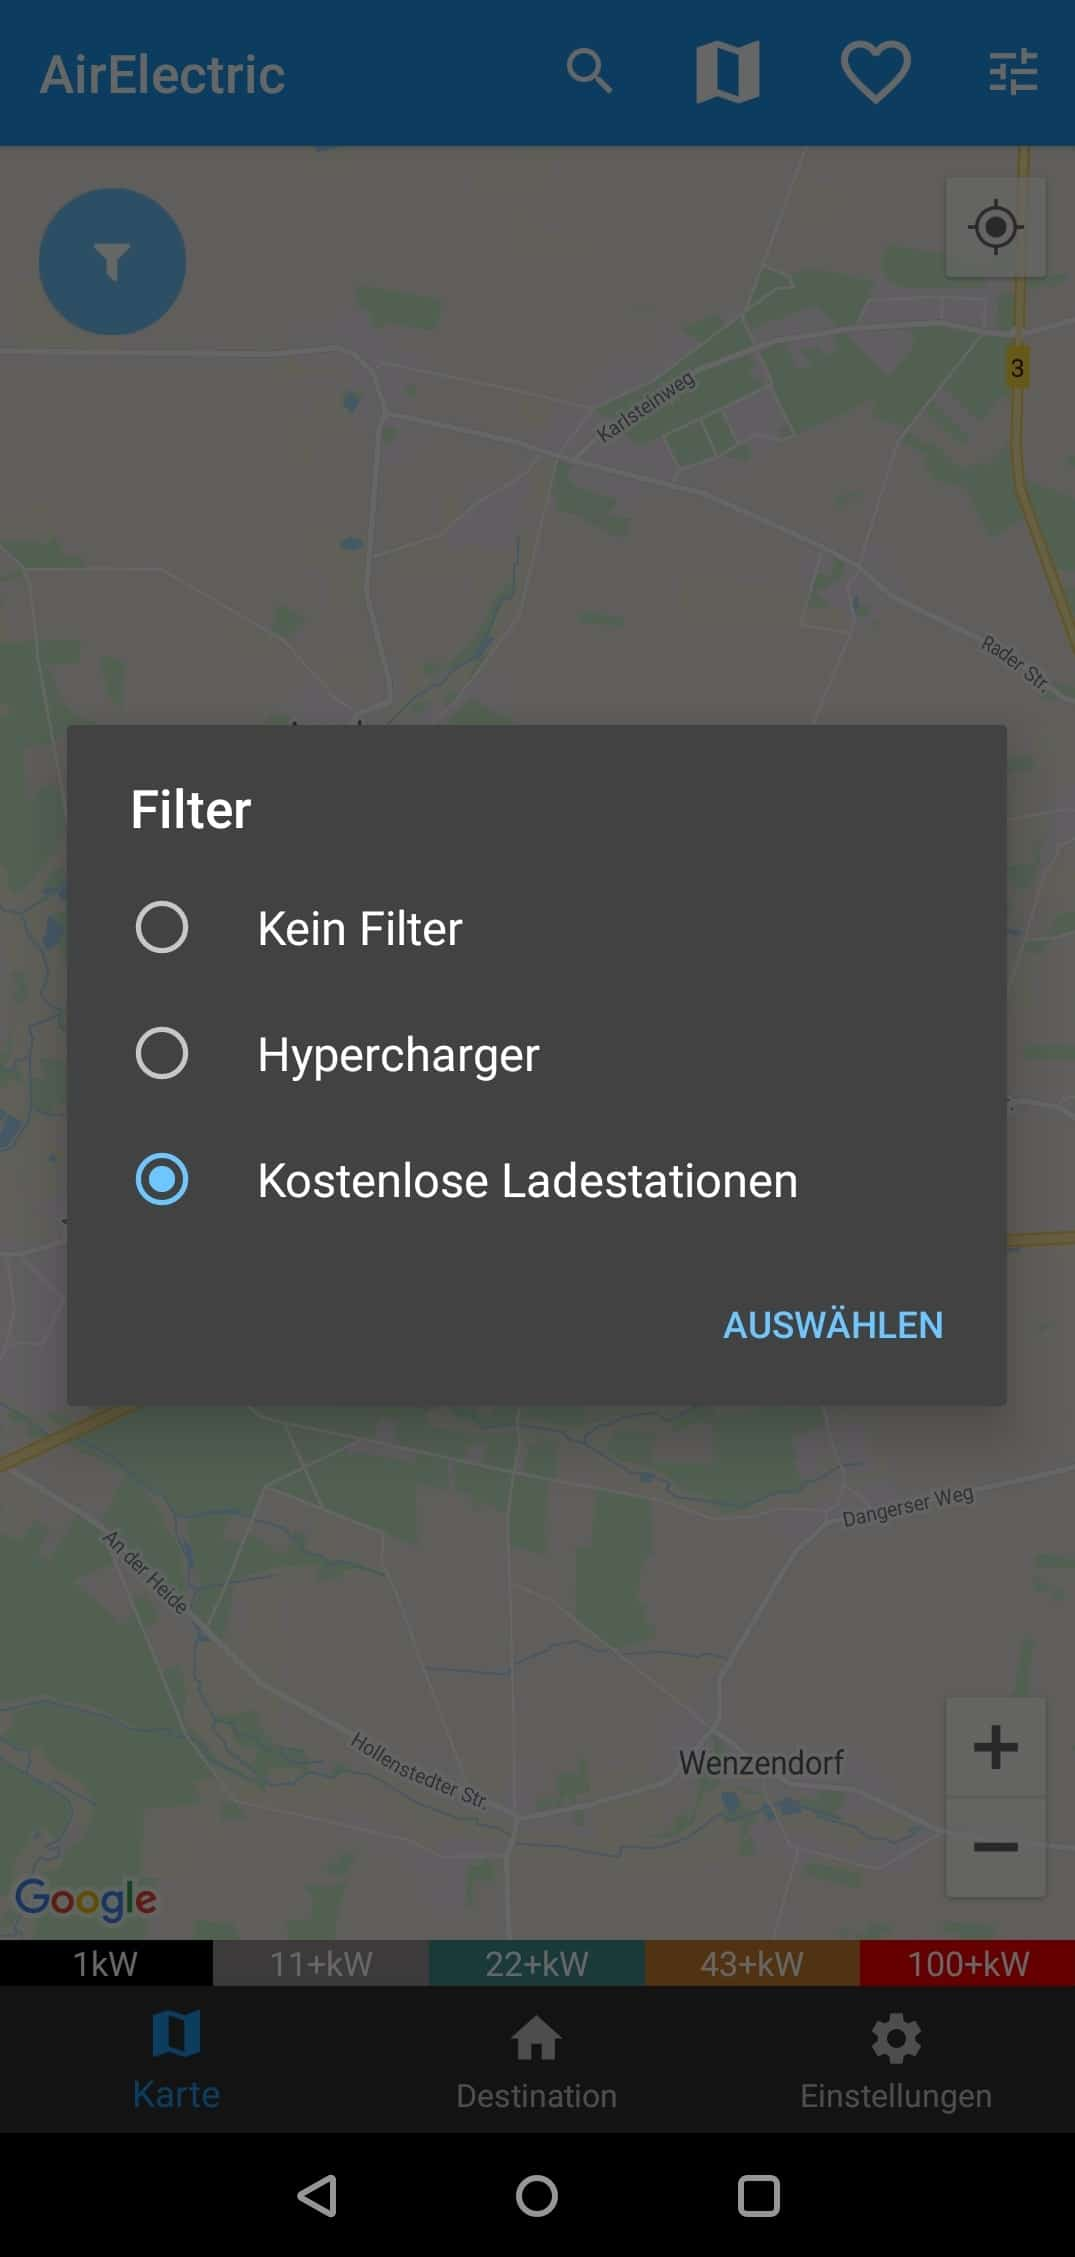 AirElectric (Android) Filter Auswahl